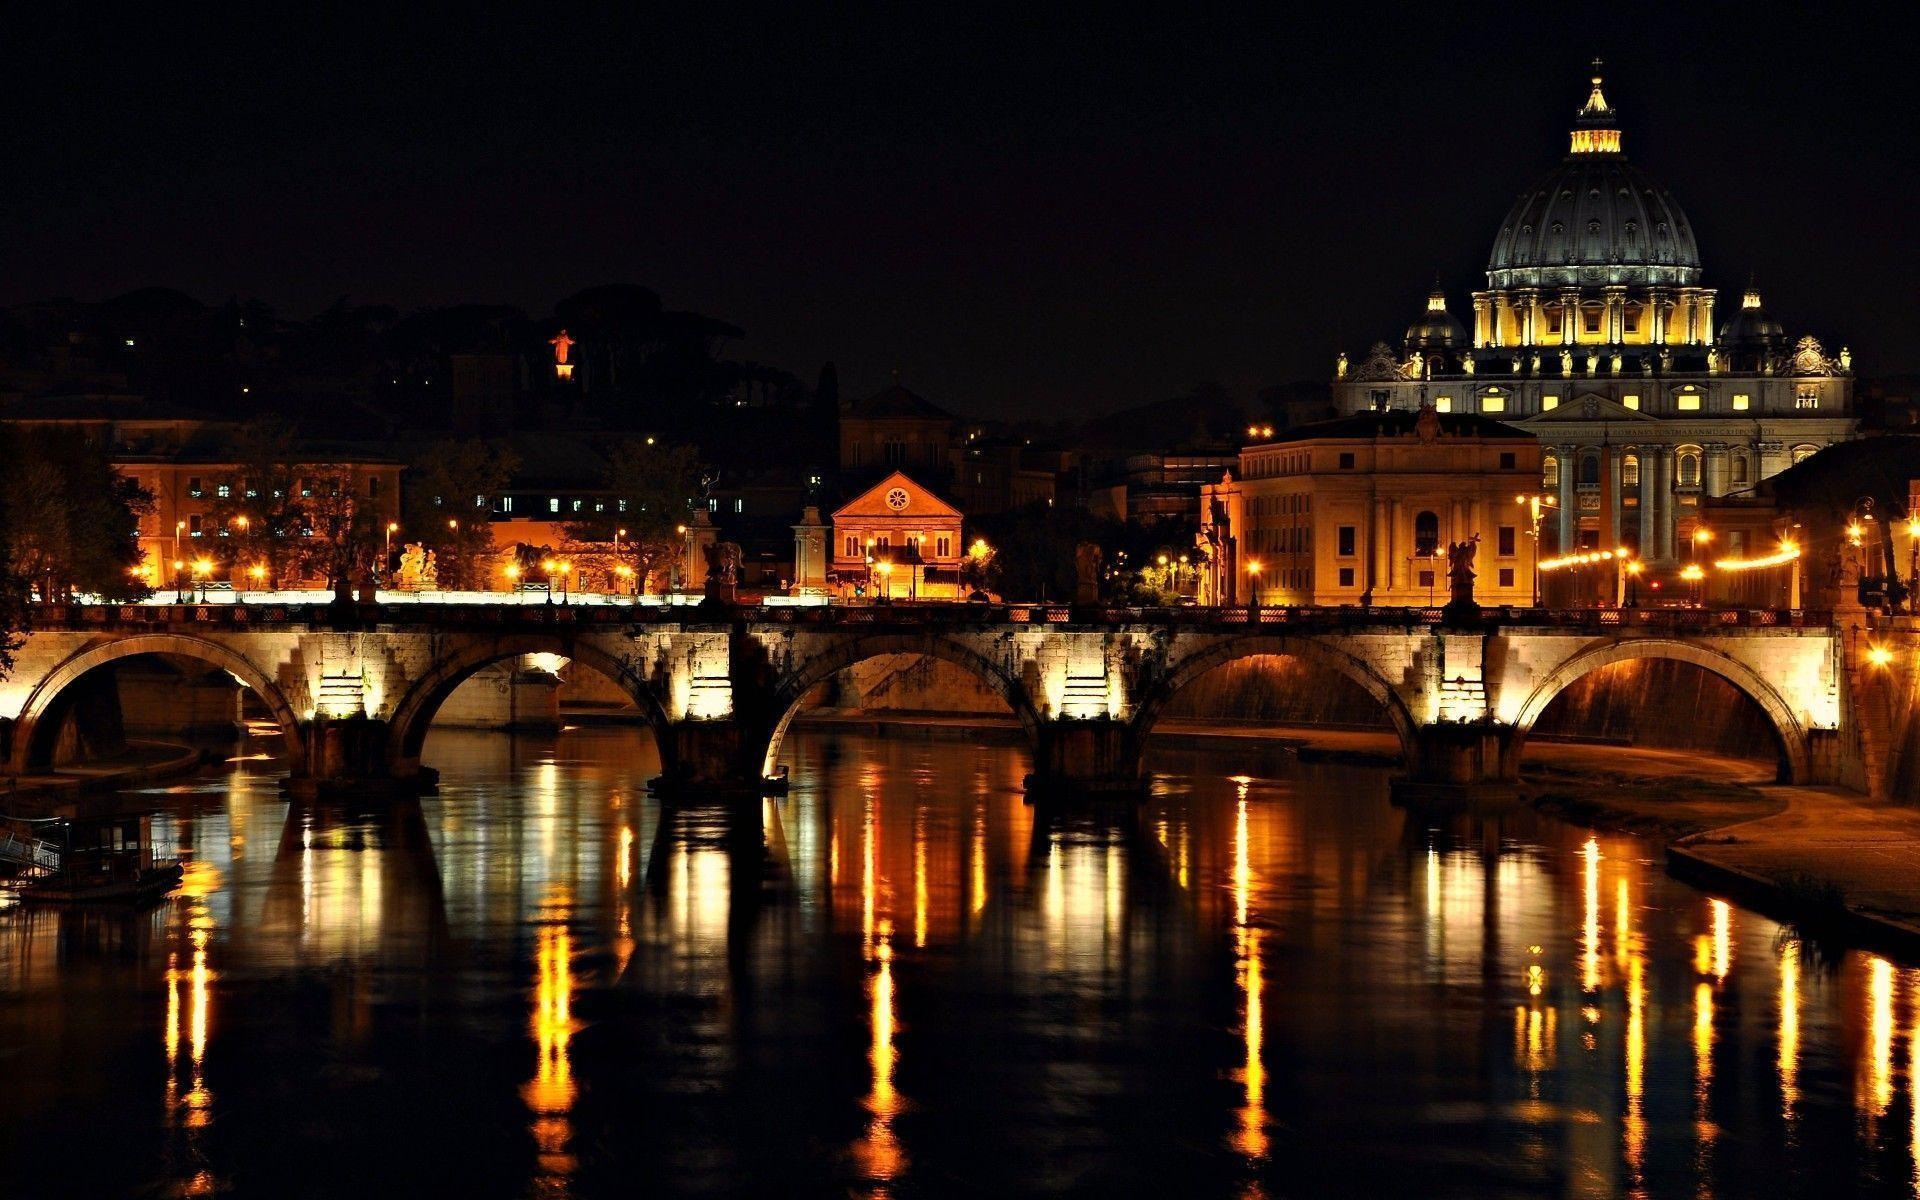 Night On Roma Wallpaper For IPhone #9685 Wallpaper | Wallpaper ...